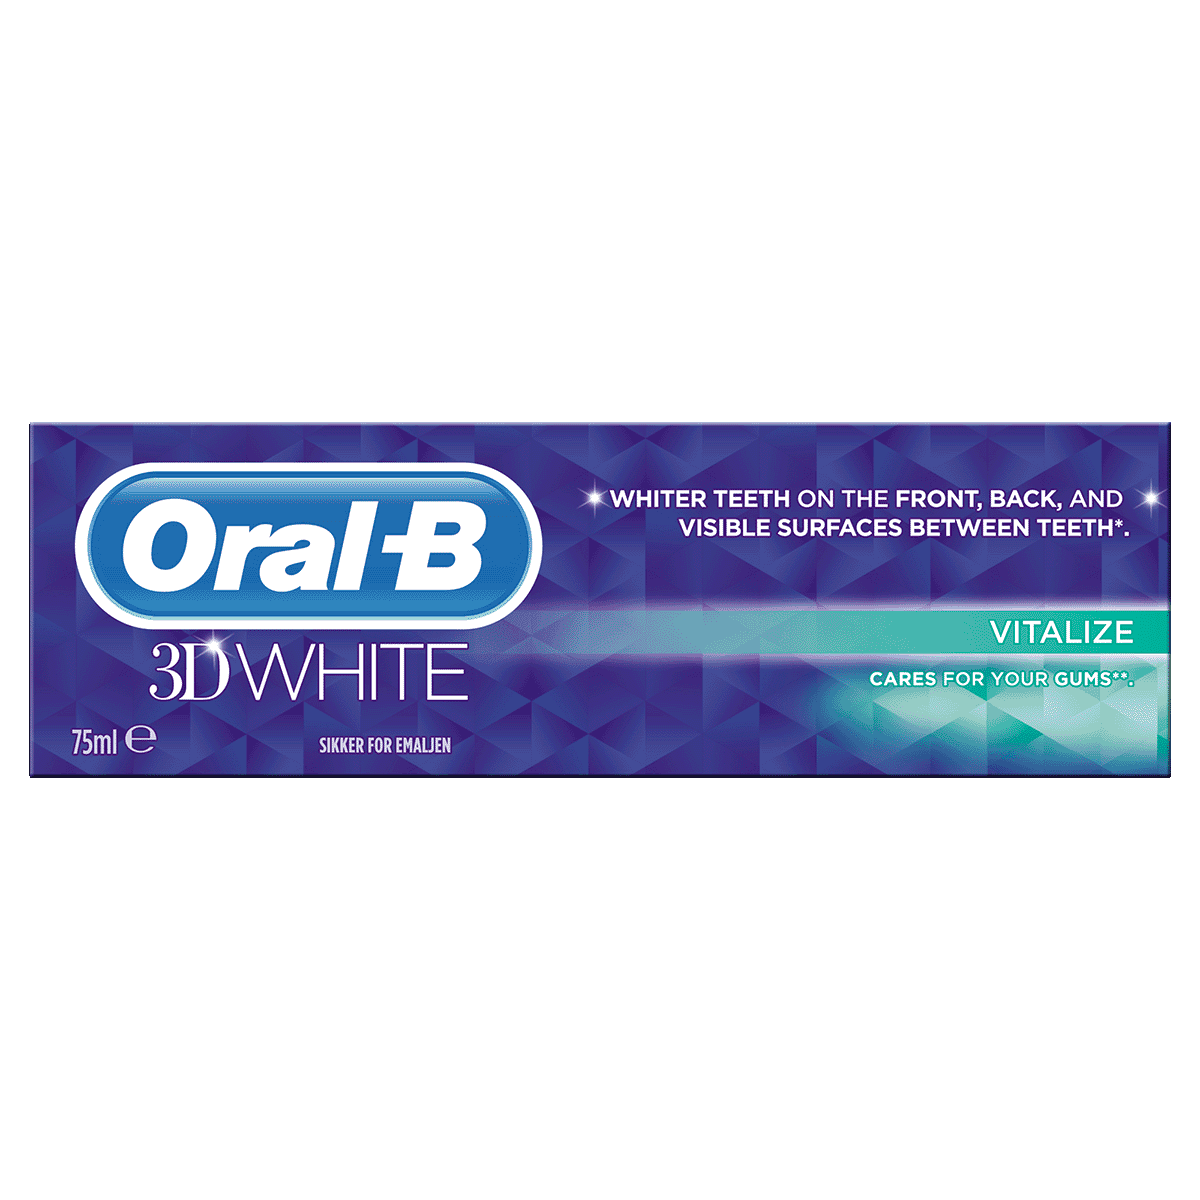 Oral-B 3D White Vitalize Toothpaste